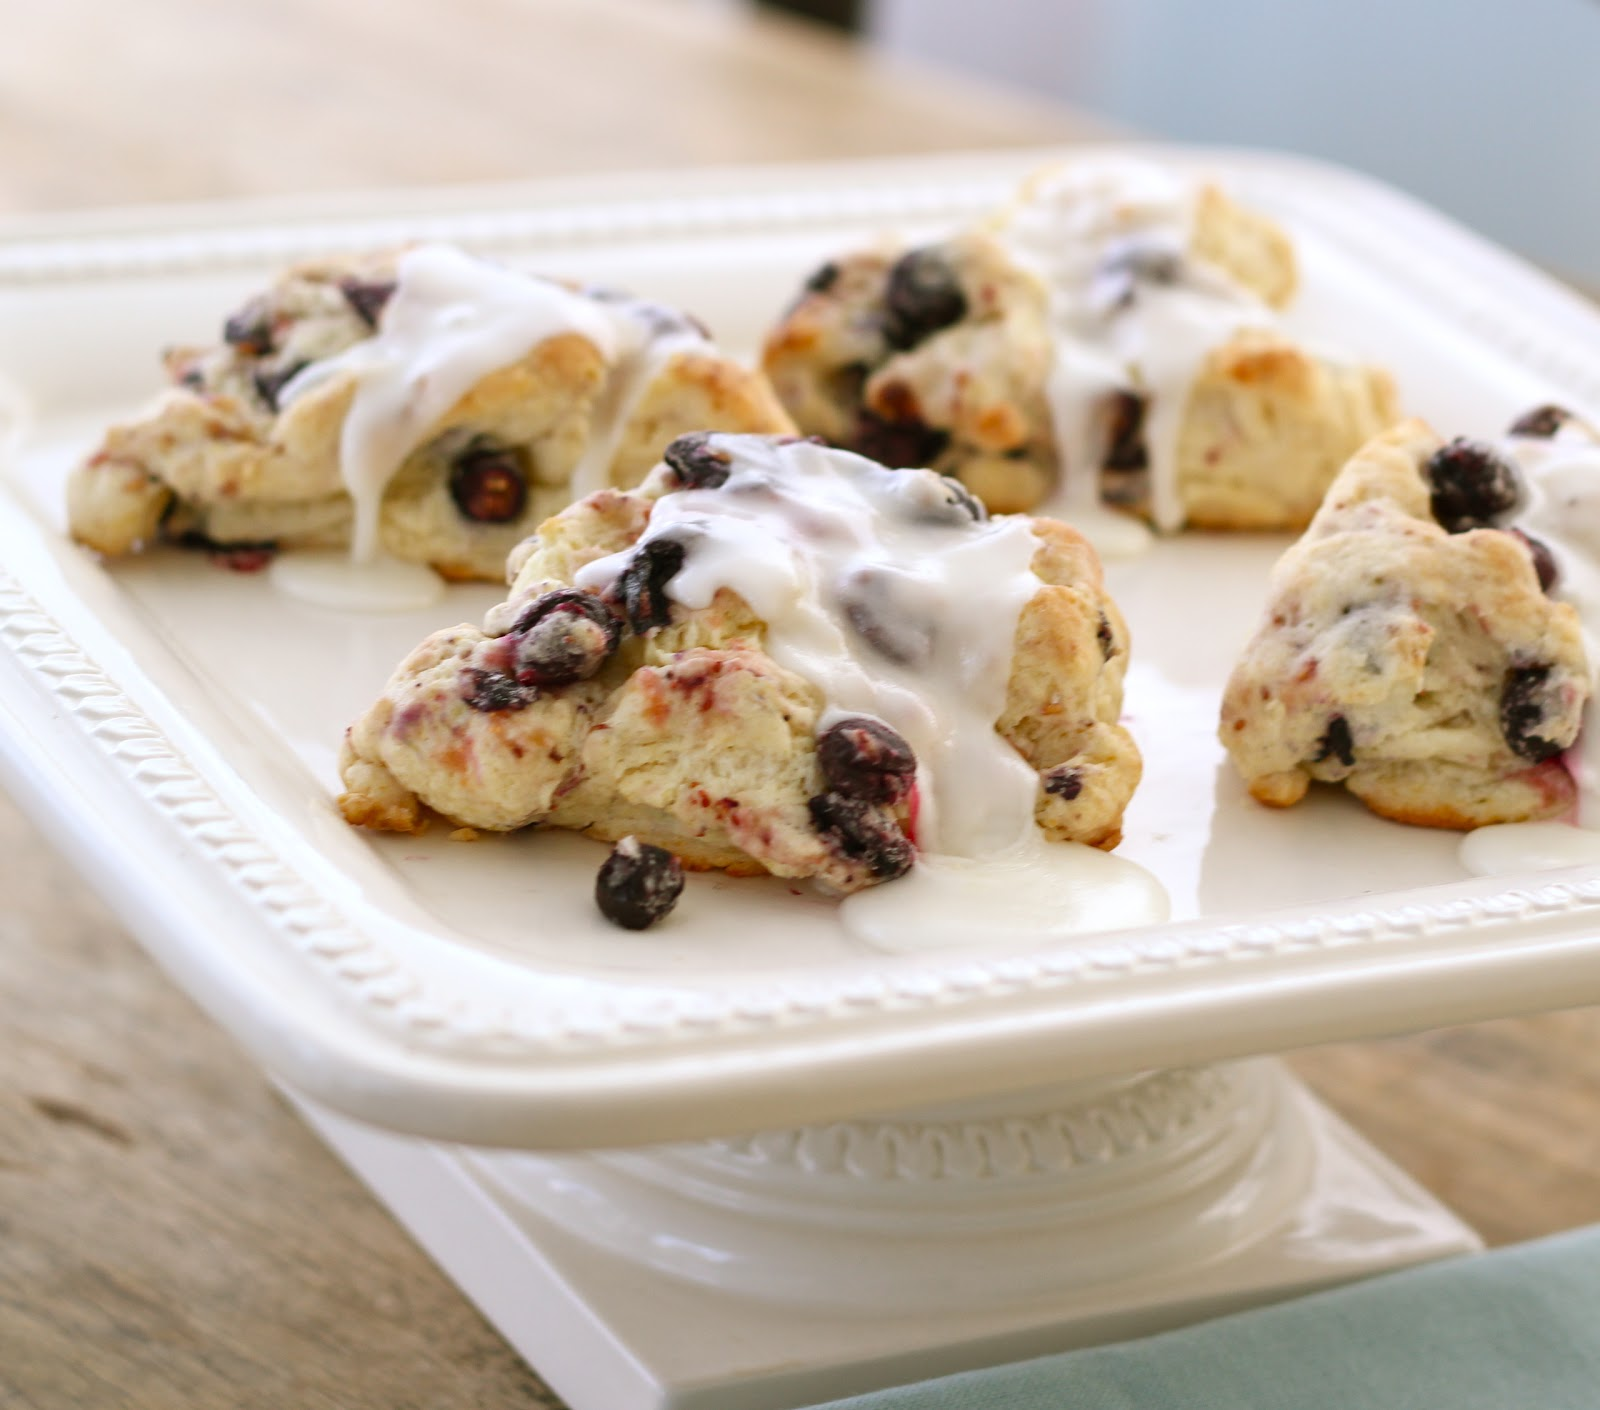 ... Scones, Scones, Scones... I'm fool for Scones | Quick Blueberry Lemon